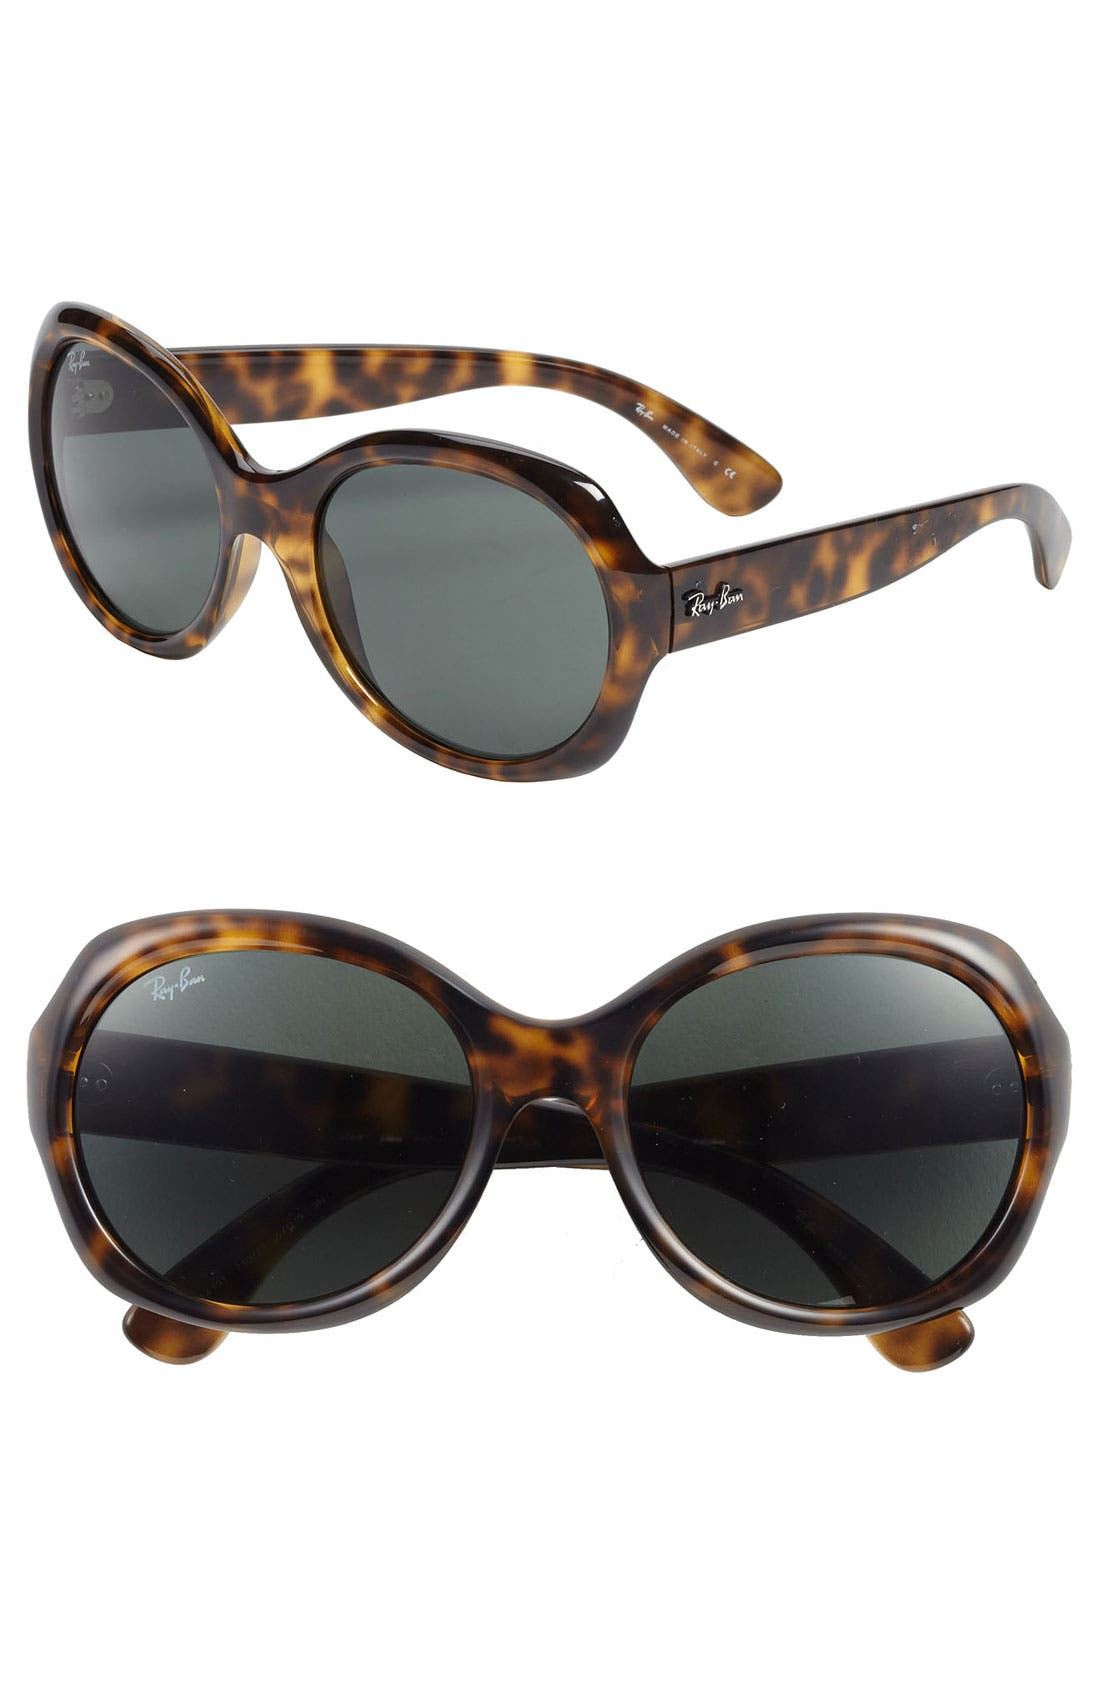 Main Image - Ray-Ban 'Round Glamour' 56mm Polarized Sunglasses